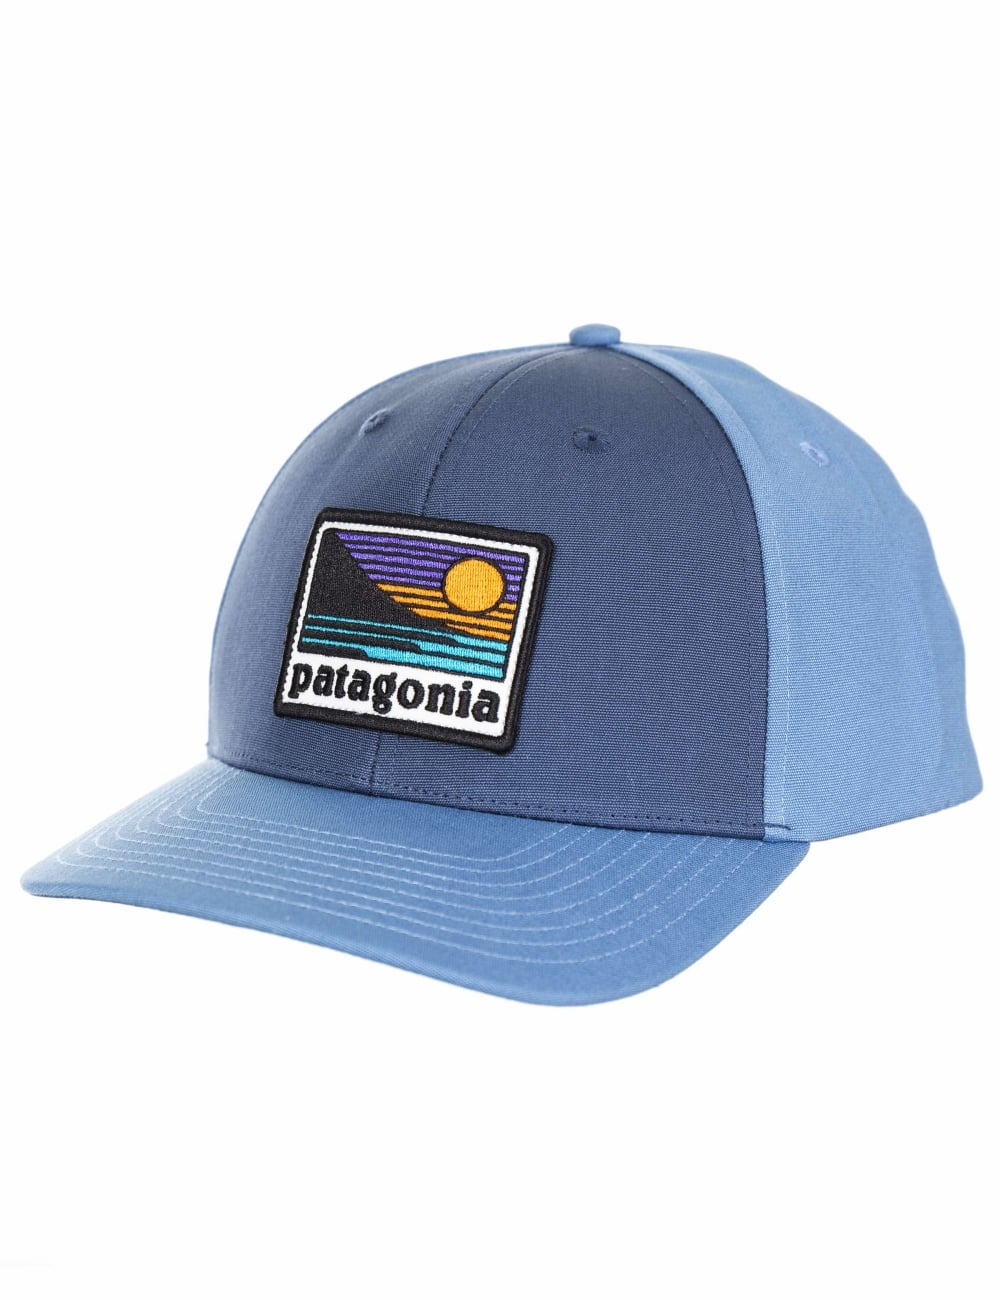 01eba63e21 Patagonia Up   Out Roger That Hat - Dolomite Blue - Hat Shop from ...